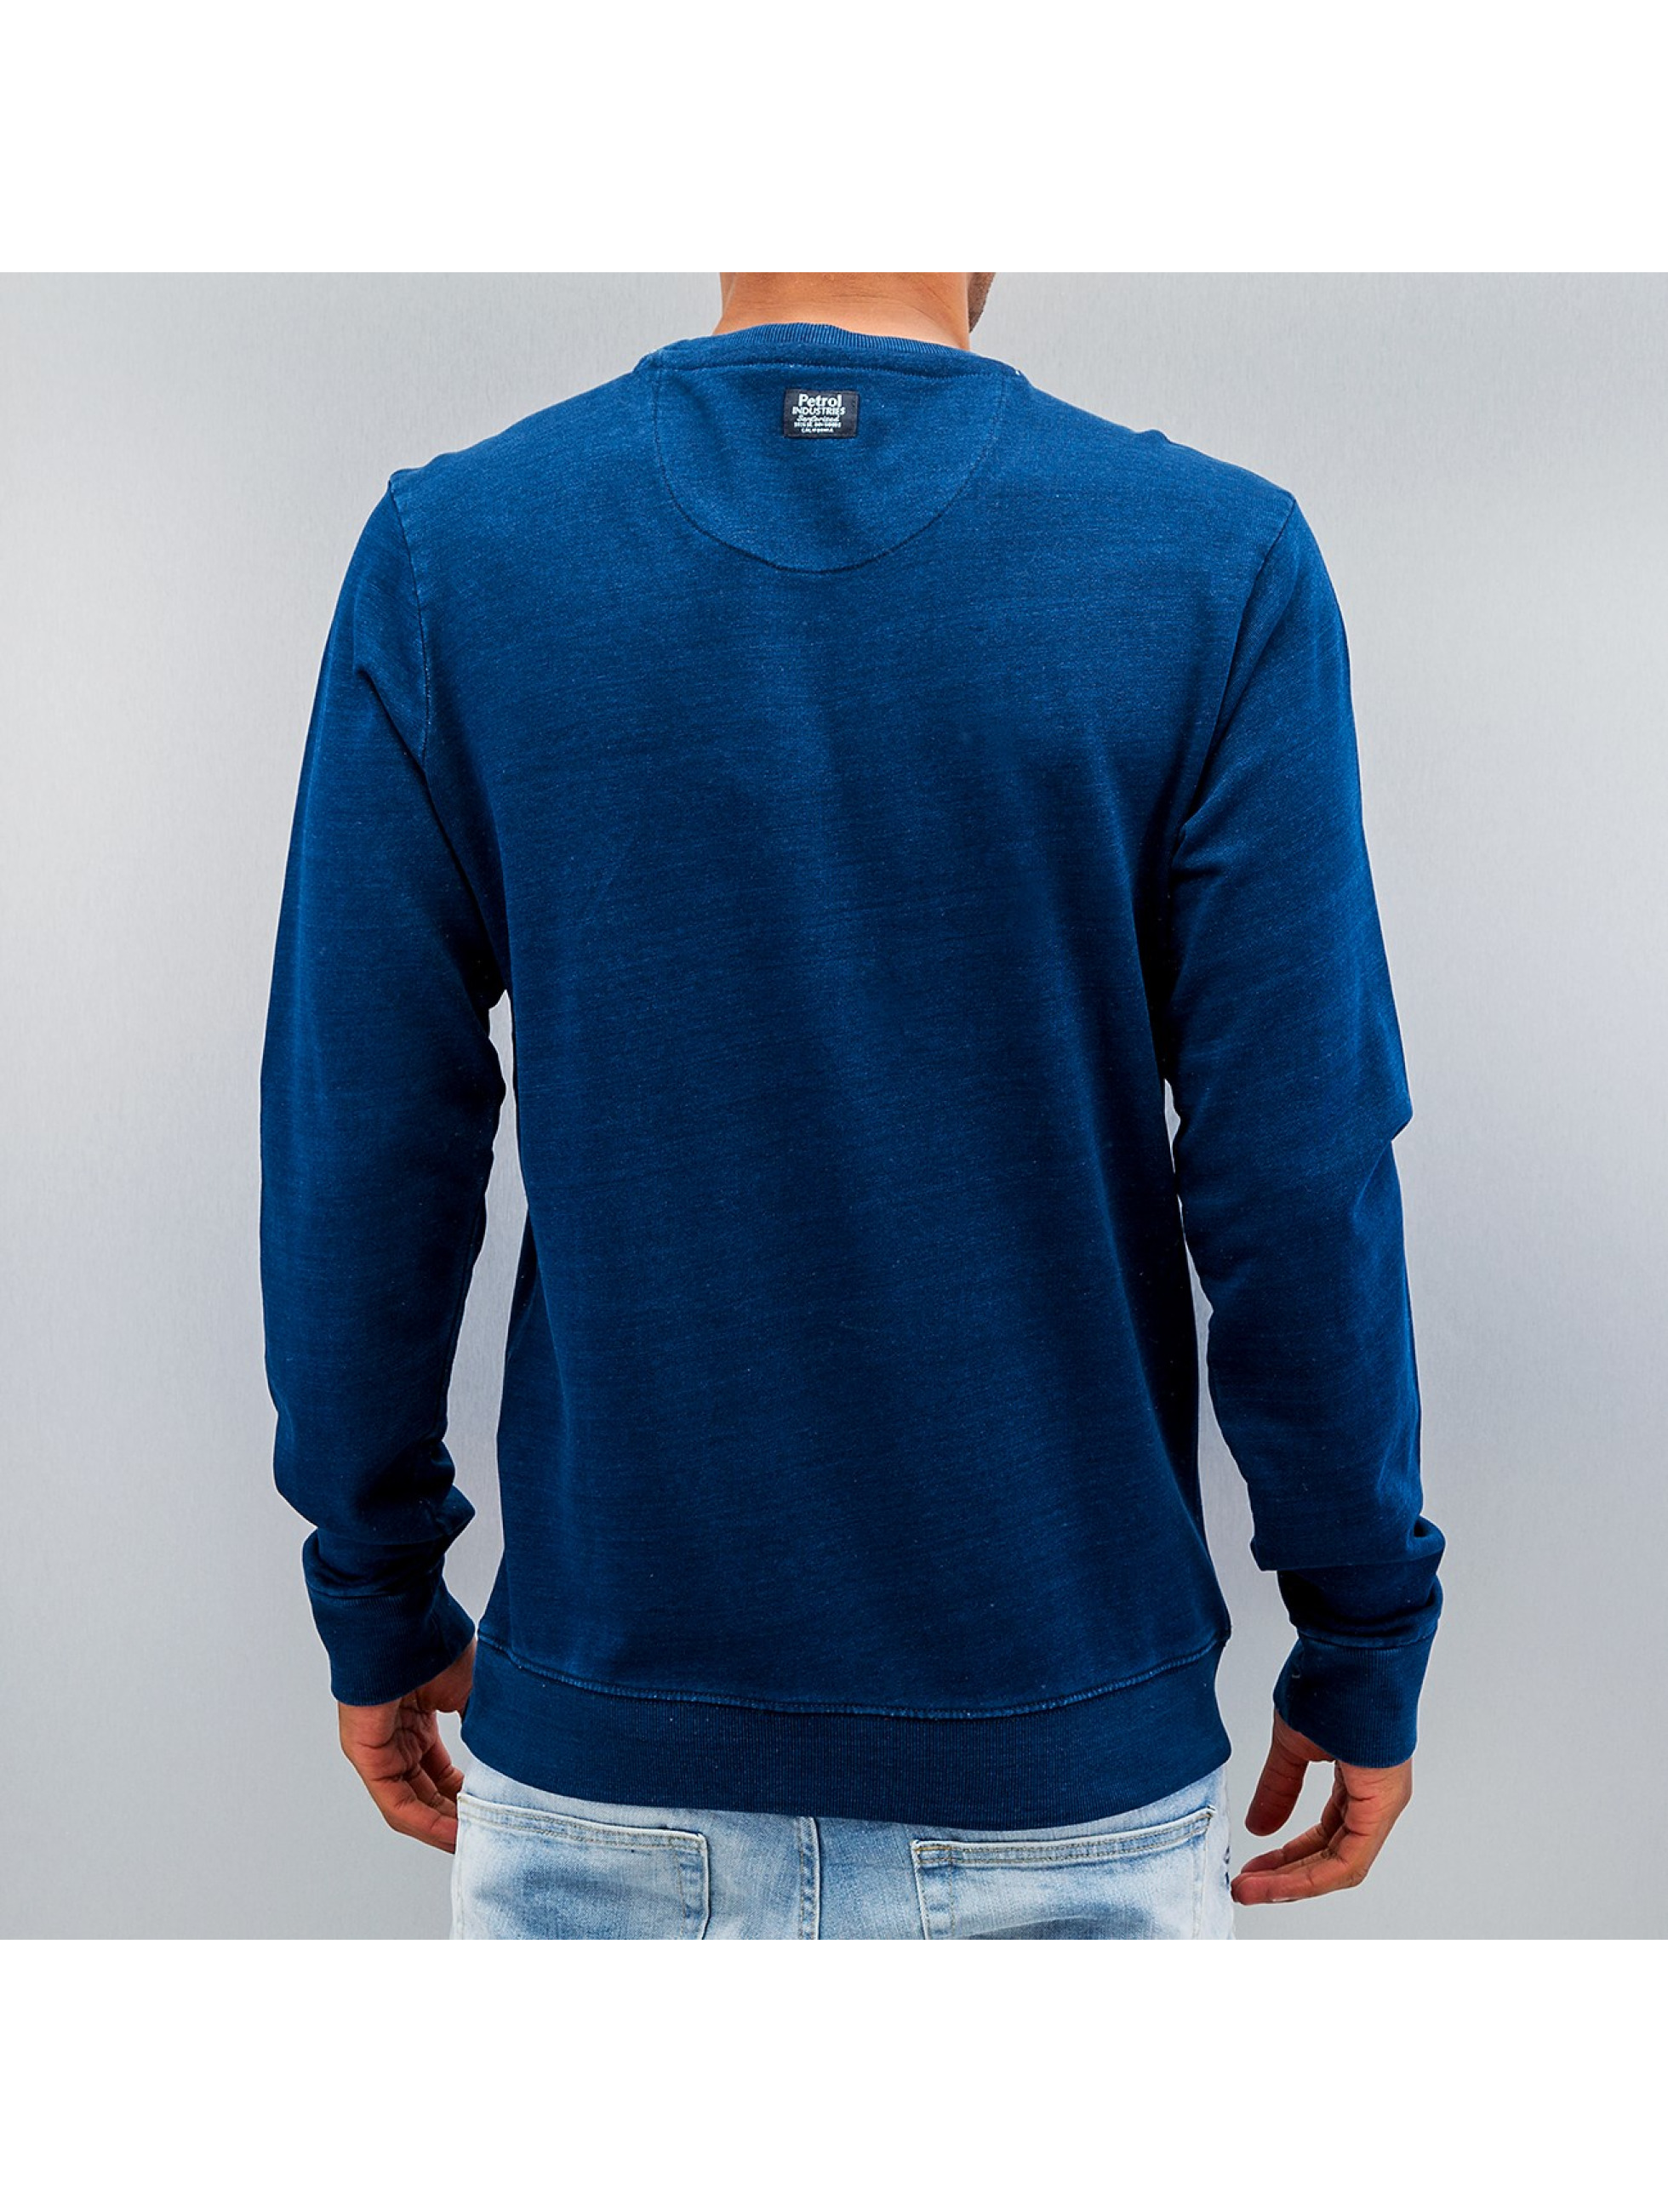 Petrol Industries Pullover Blue Denim blau